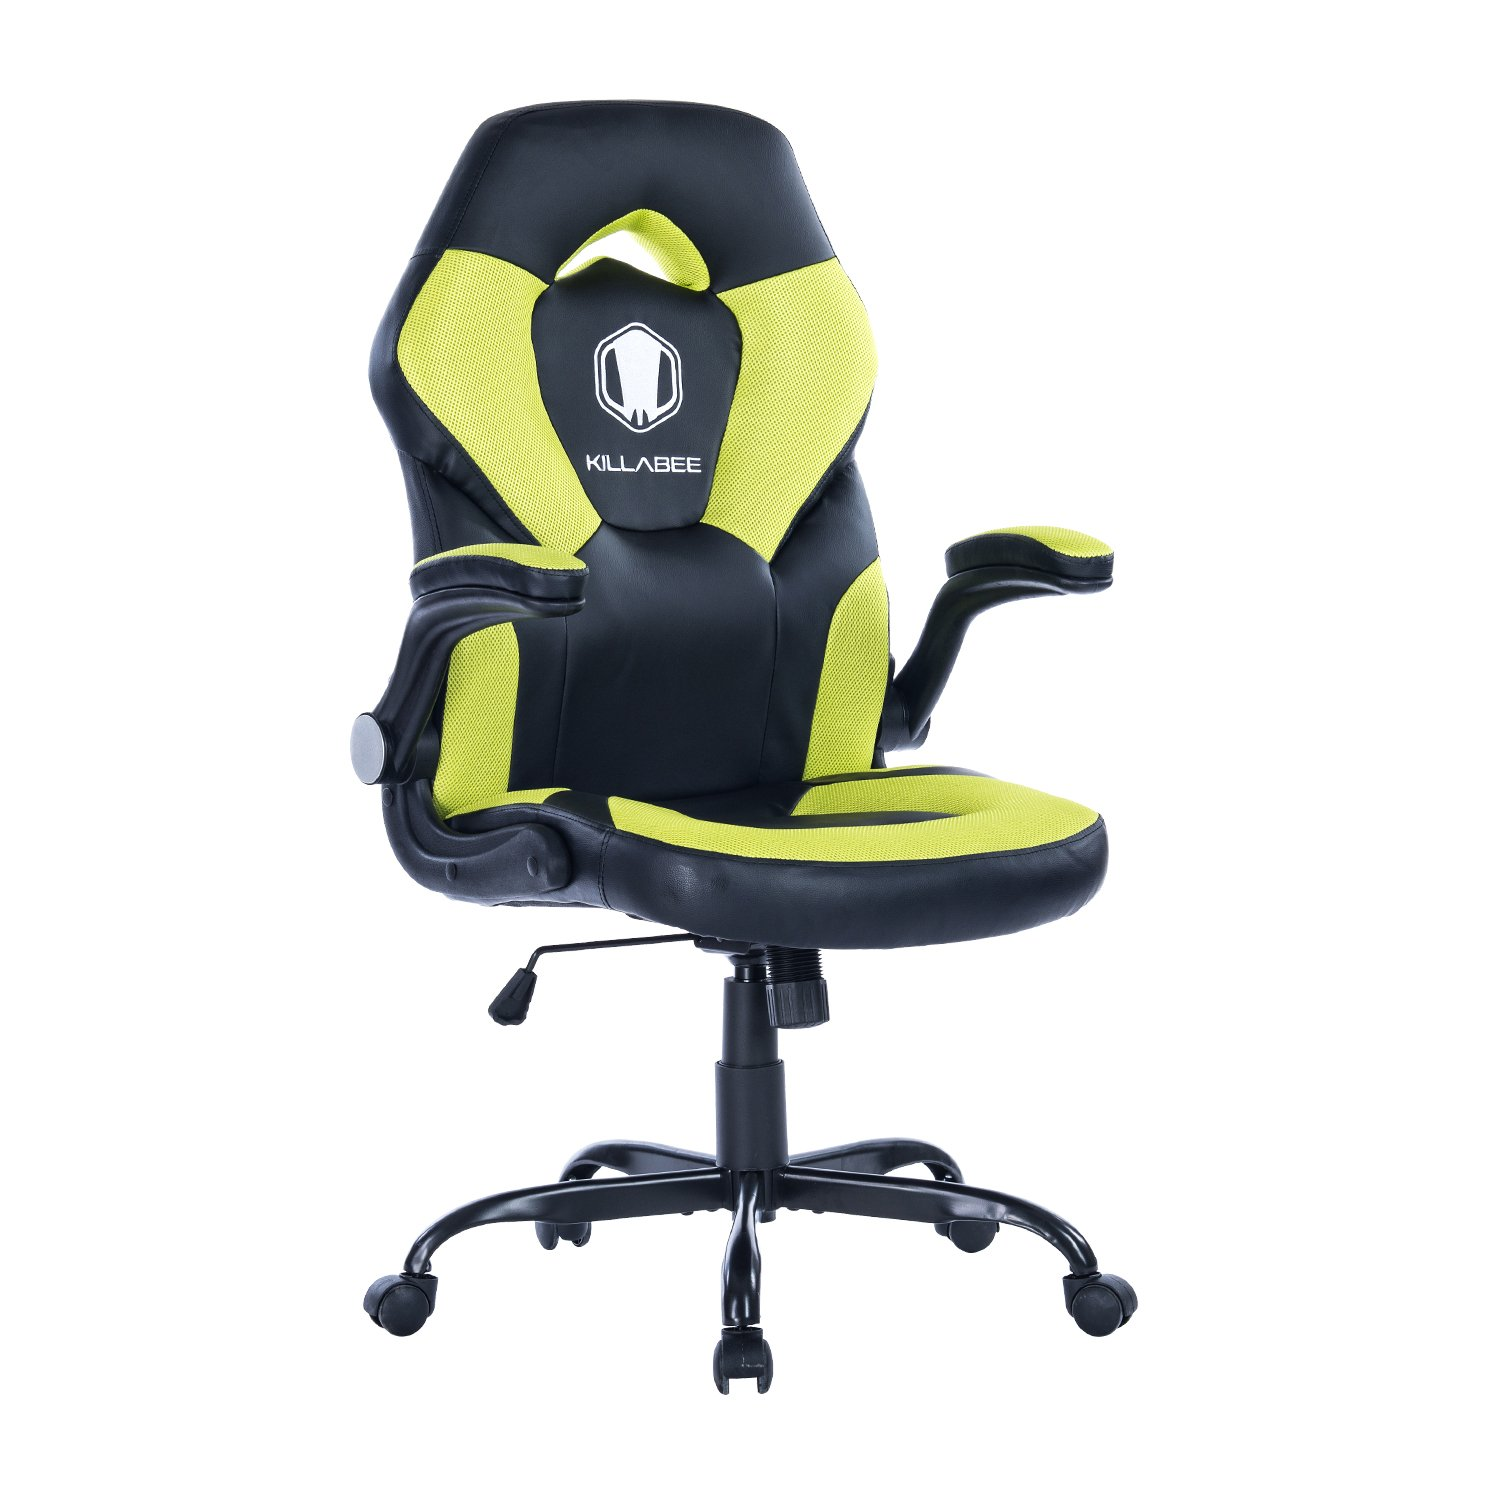 KILLABEE Racing Style Gaming Chair Flip-Up Arms - Ergonomic Leather & Mesh Computer Desk Office Chair, Green & Black